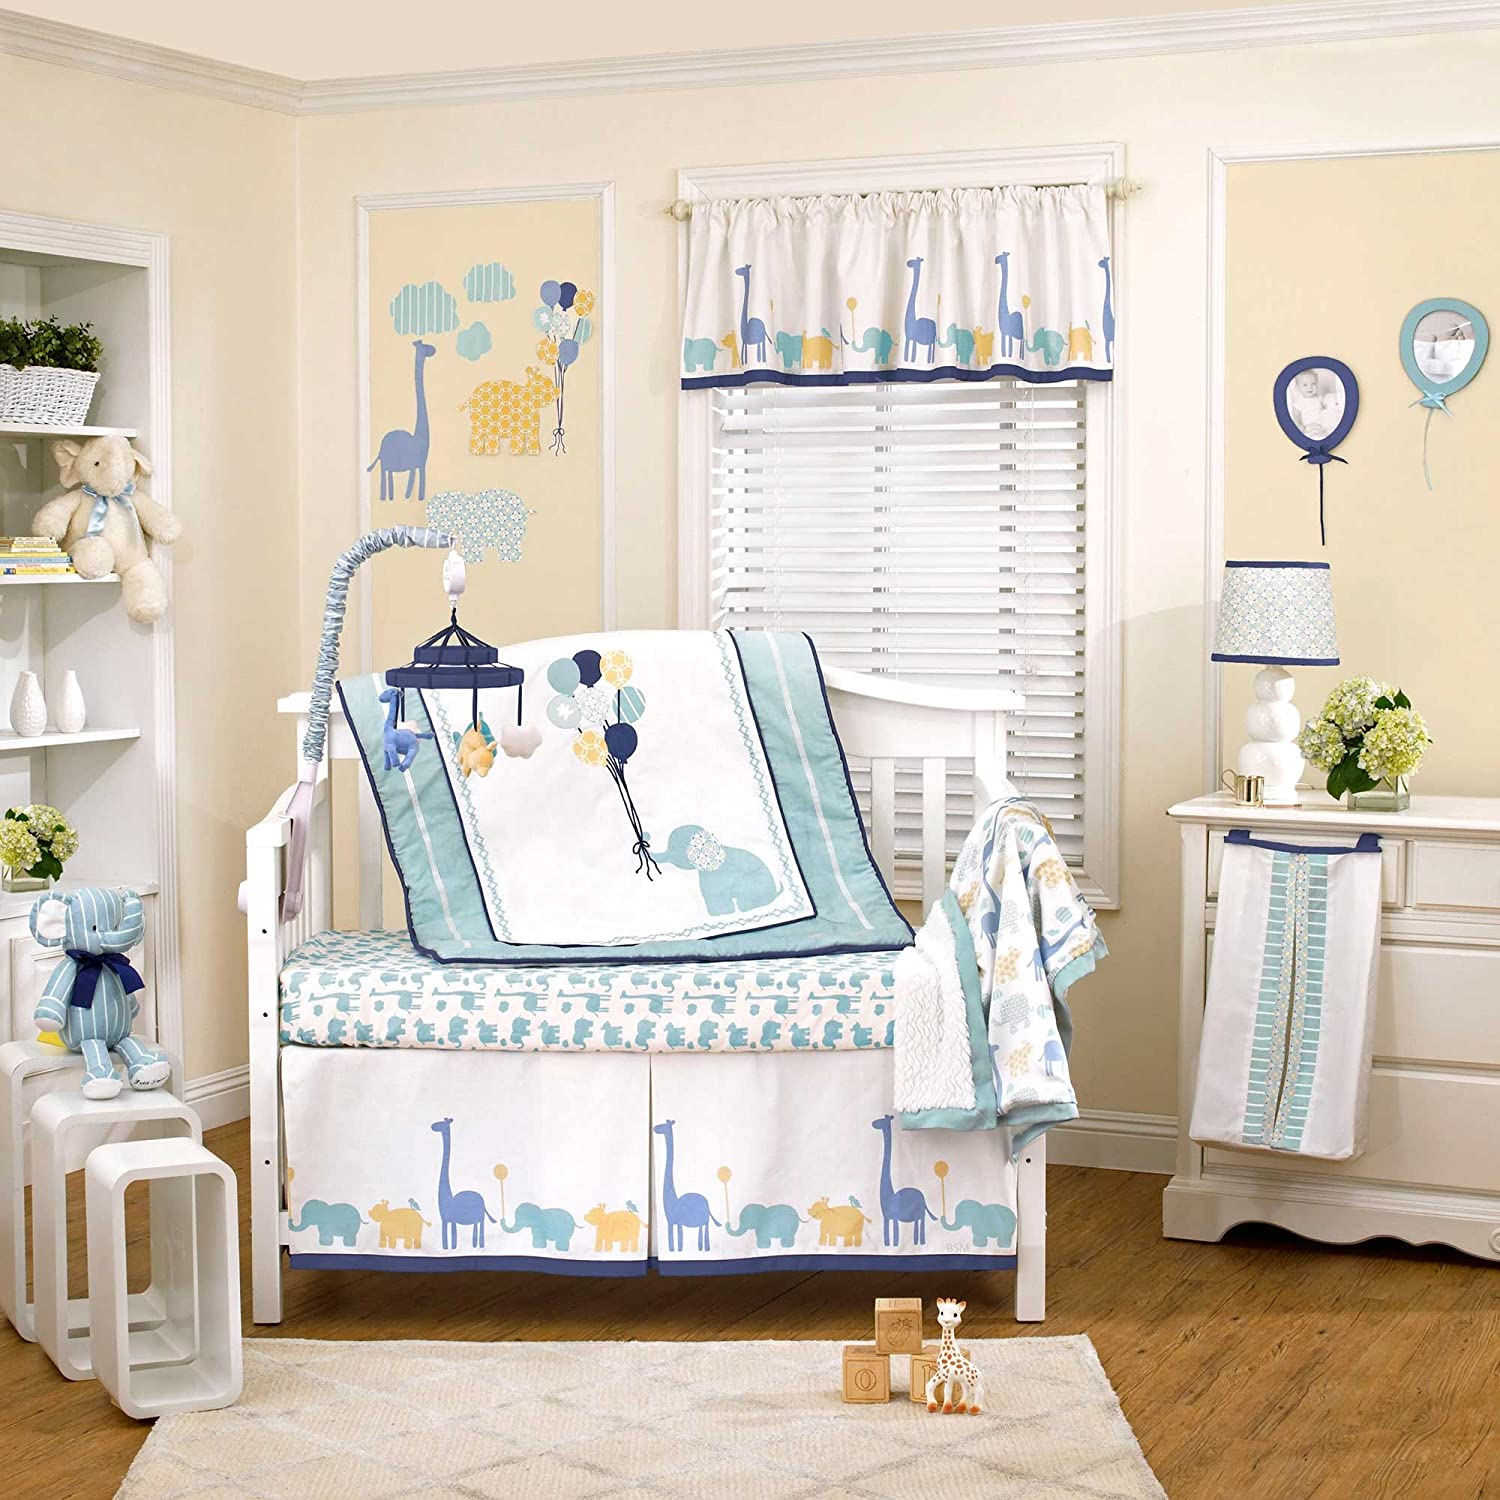 Happy Animals 4 Piece Baby Crib Cheap mail order specialty store by Set supreme Bedding Petit Tresor